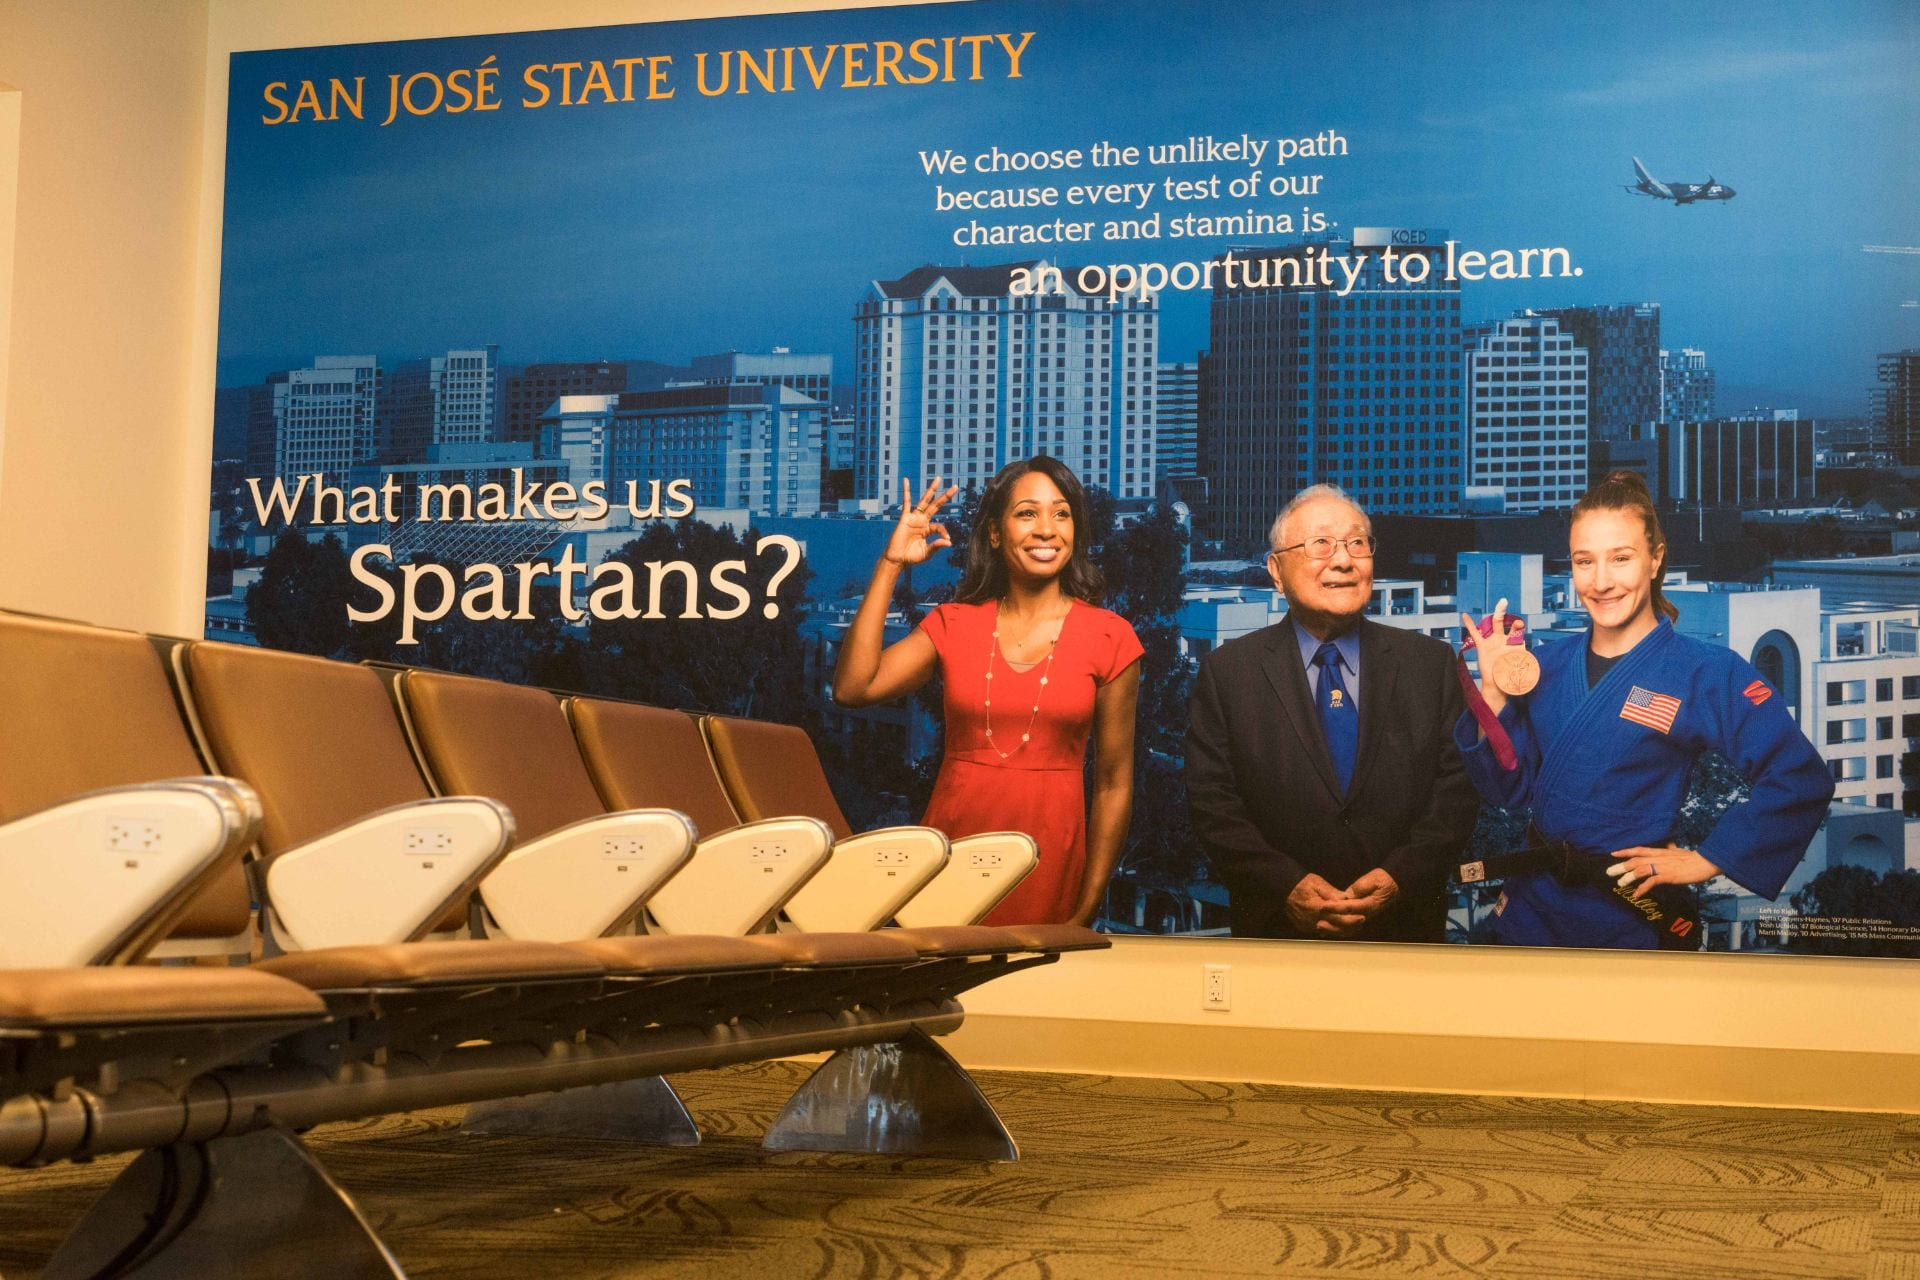 The SJSU power suite in the San Jose International Airport on Friday, July 13, 2018. (Photo: James Tensuan, '15 Journalism)